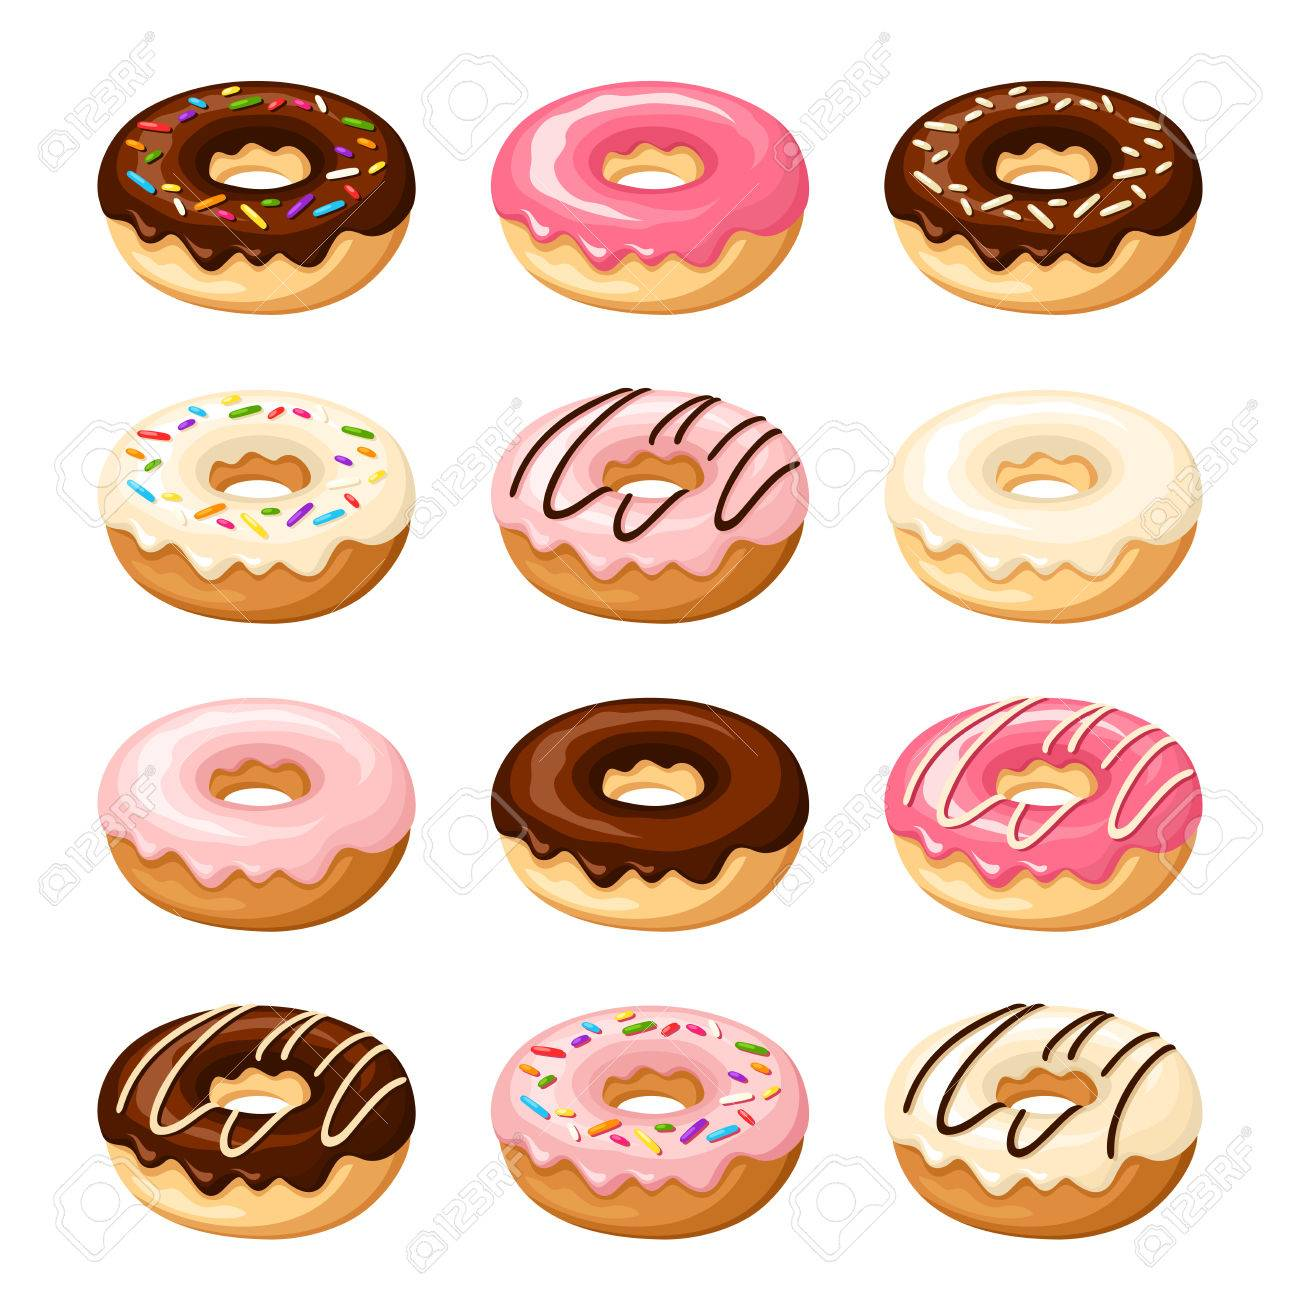 1300x1300 Set Of Twelve Donuts With White, Pink Chocolate Glaze